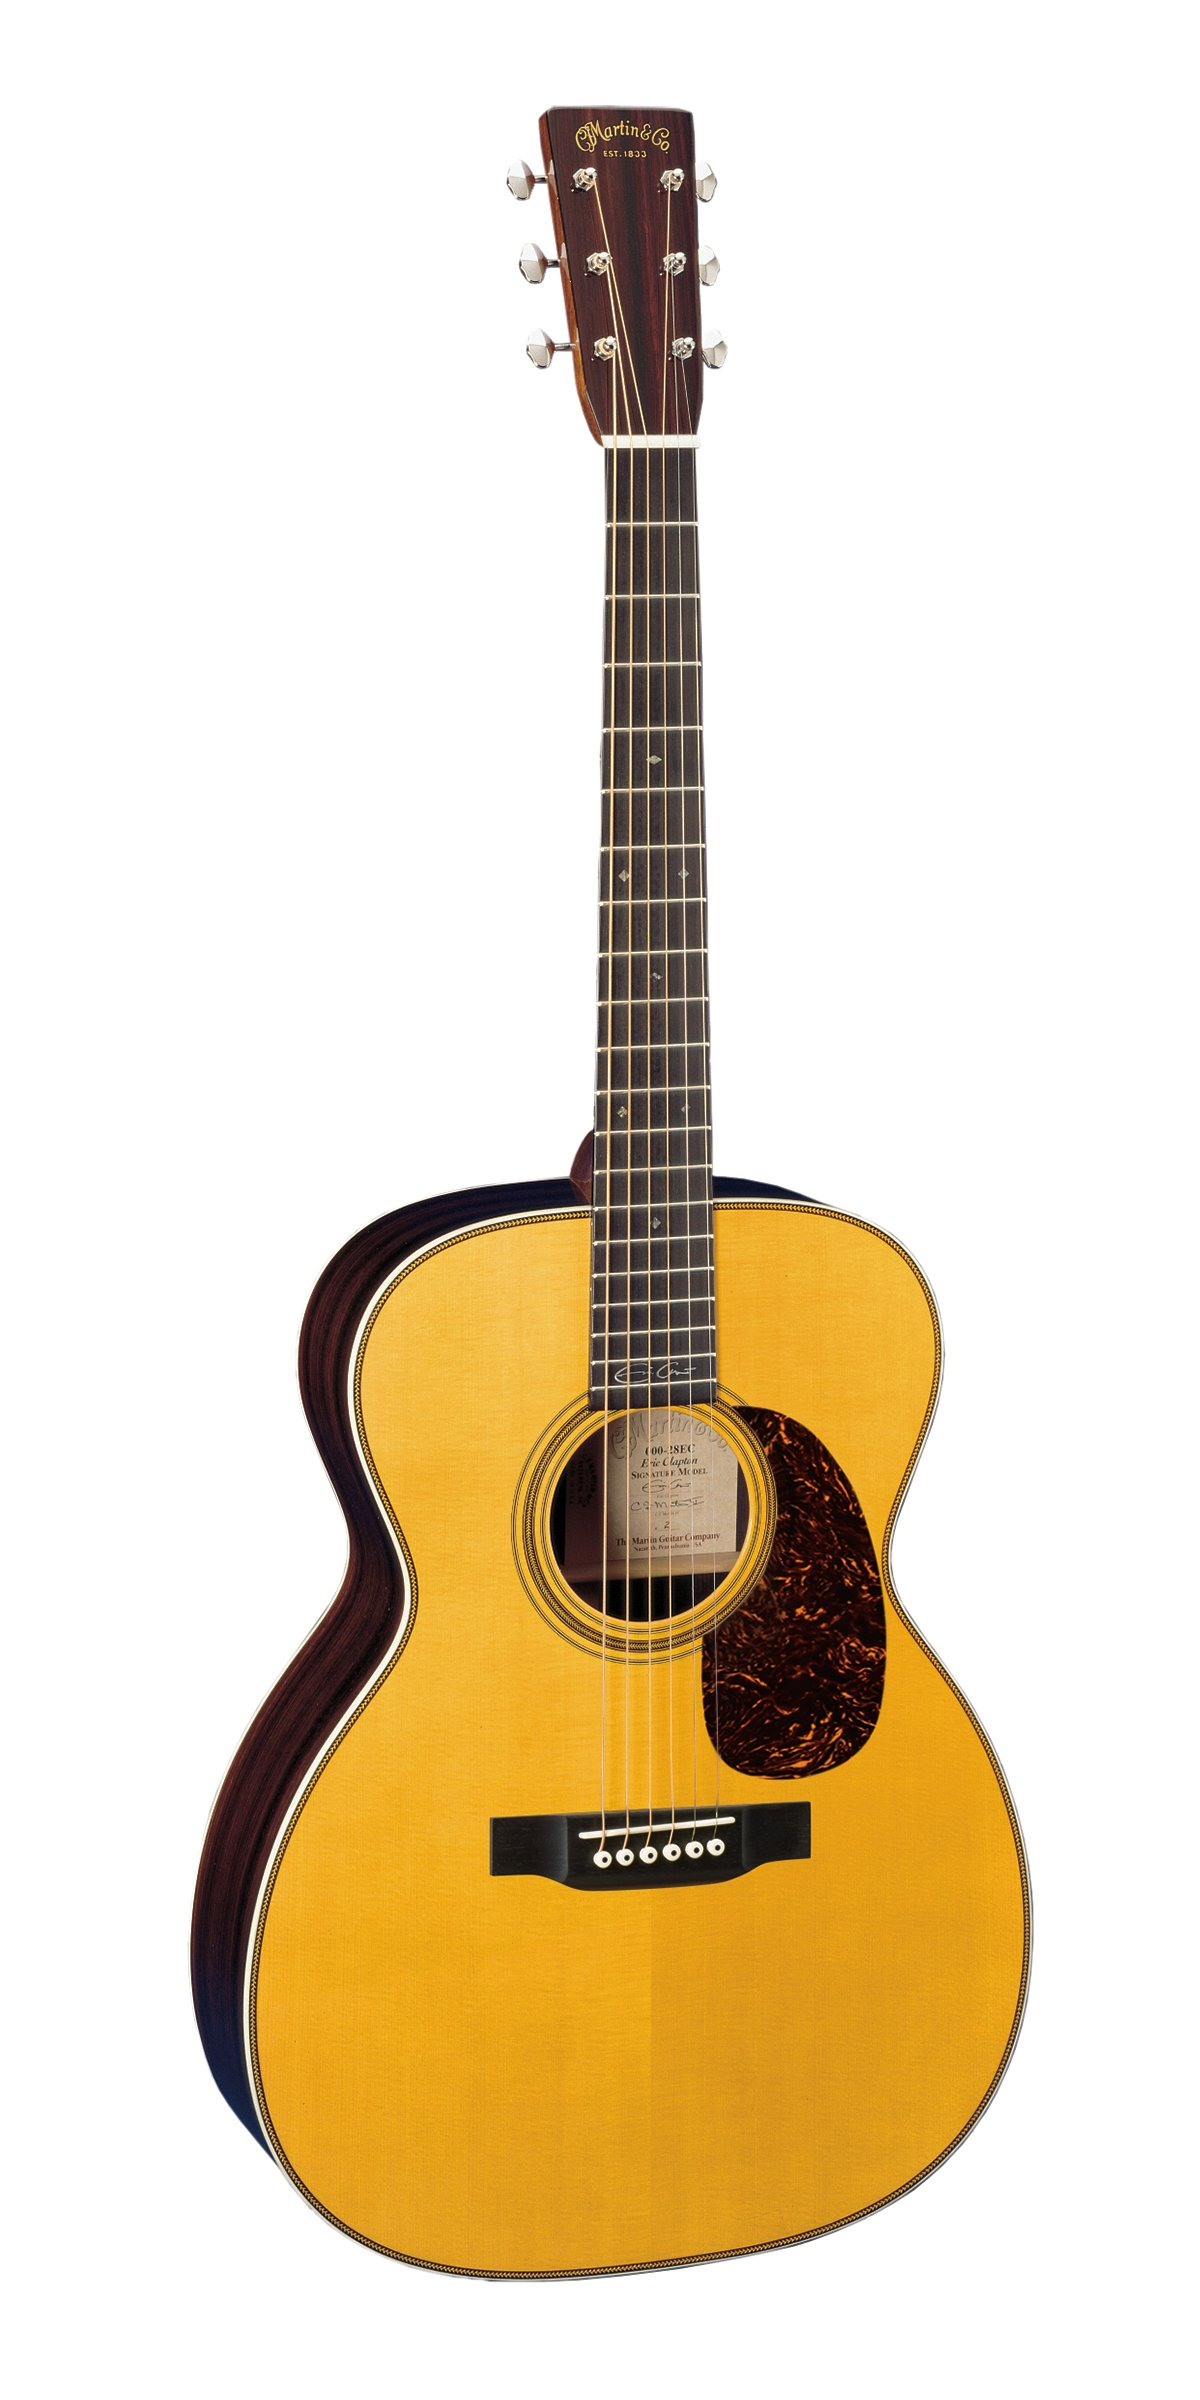 Dating your martin guitar best free dating site in america